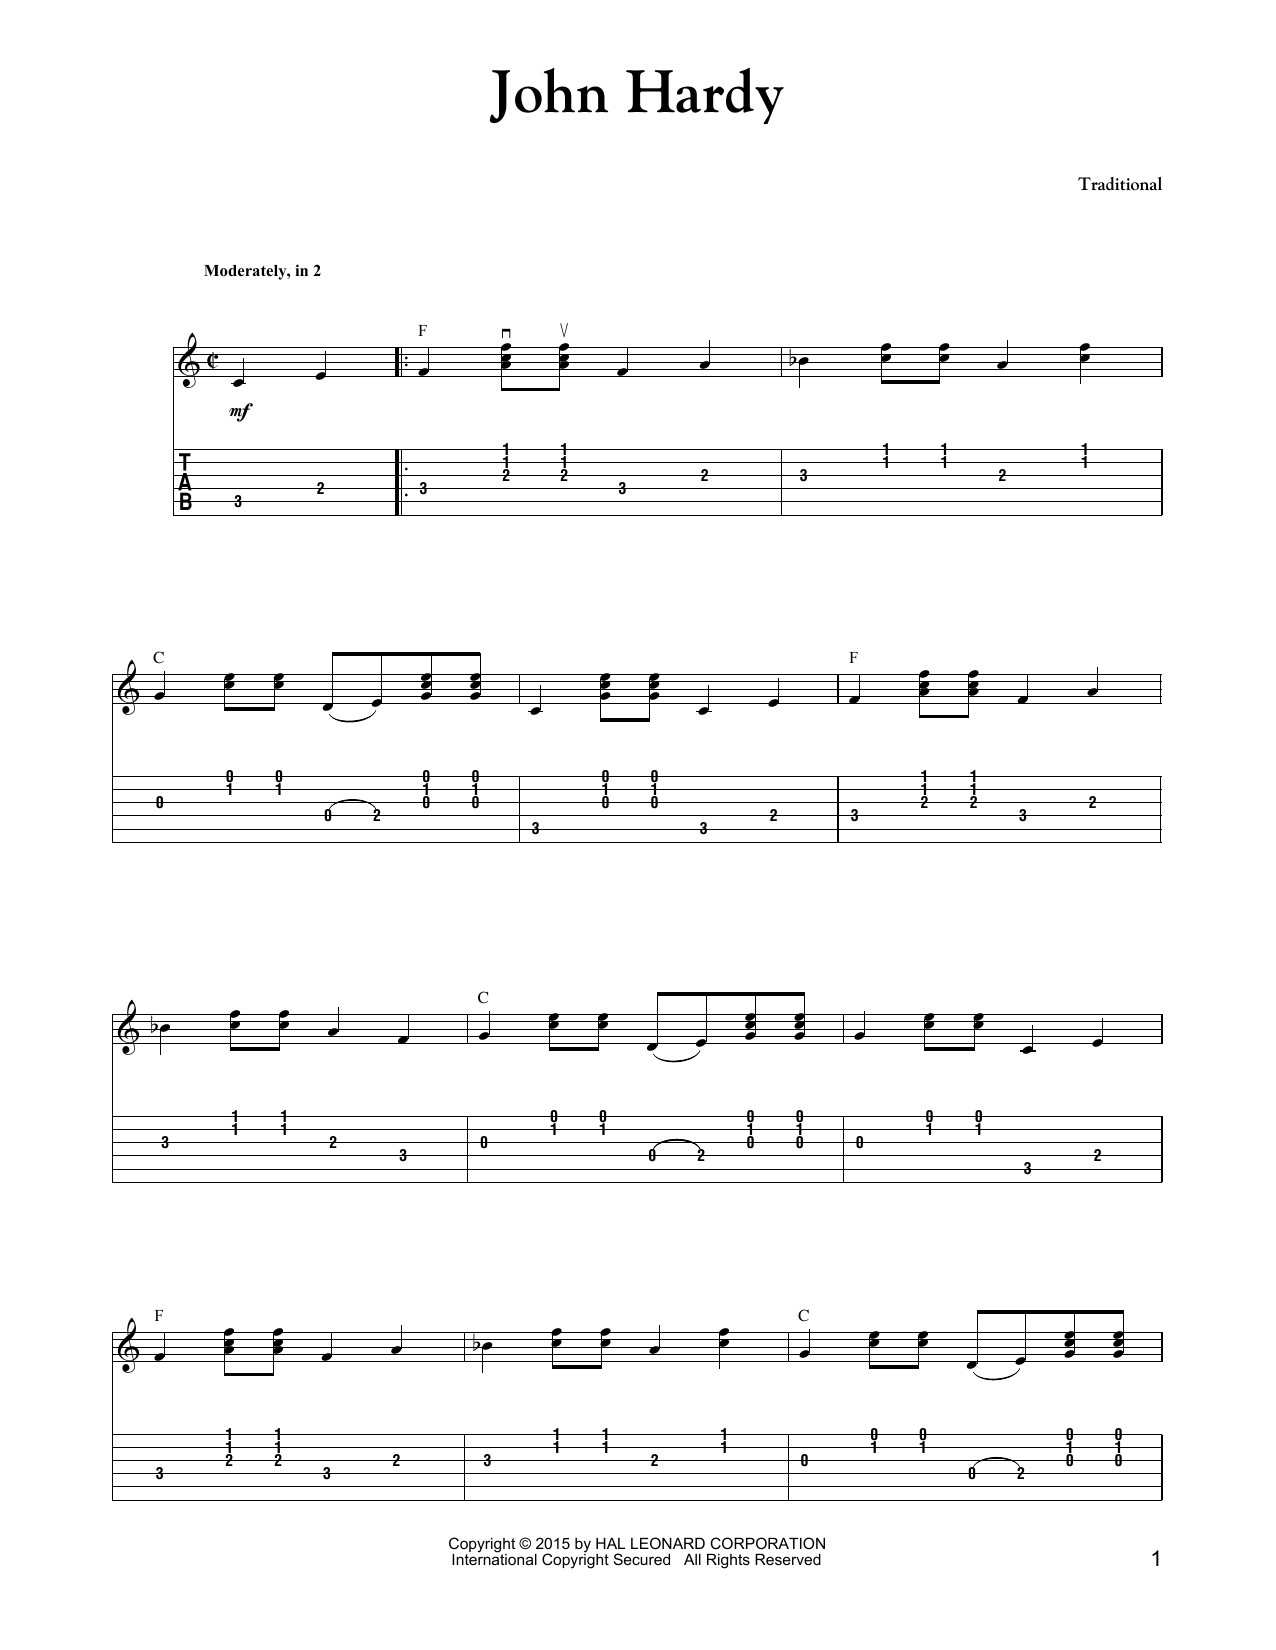 Carter Style Guitar John Hardy sheet music notes and chords. Download Printable PDF.